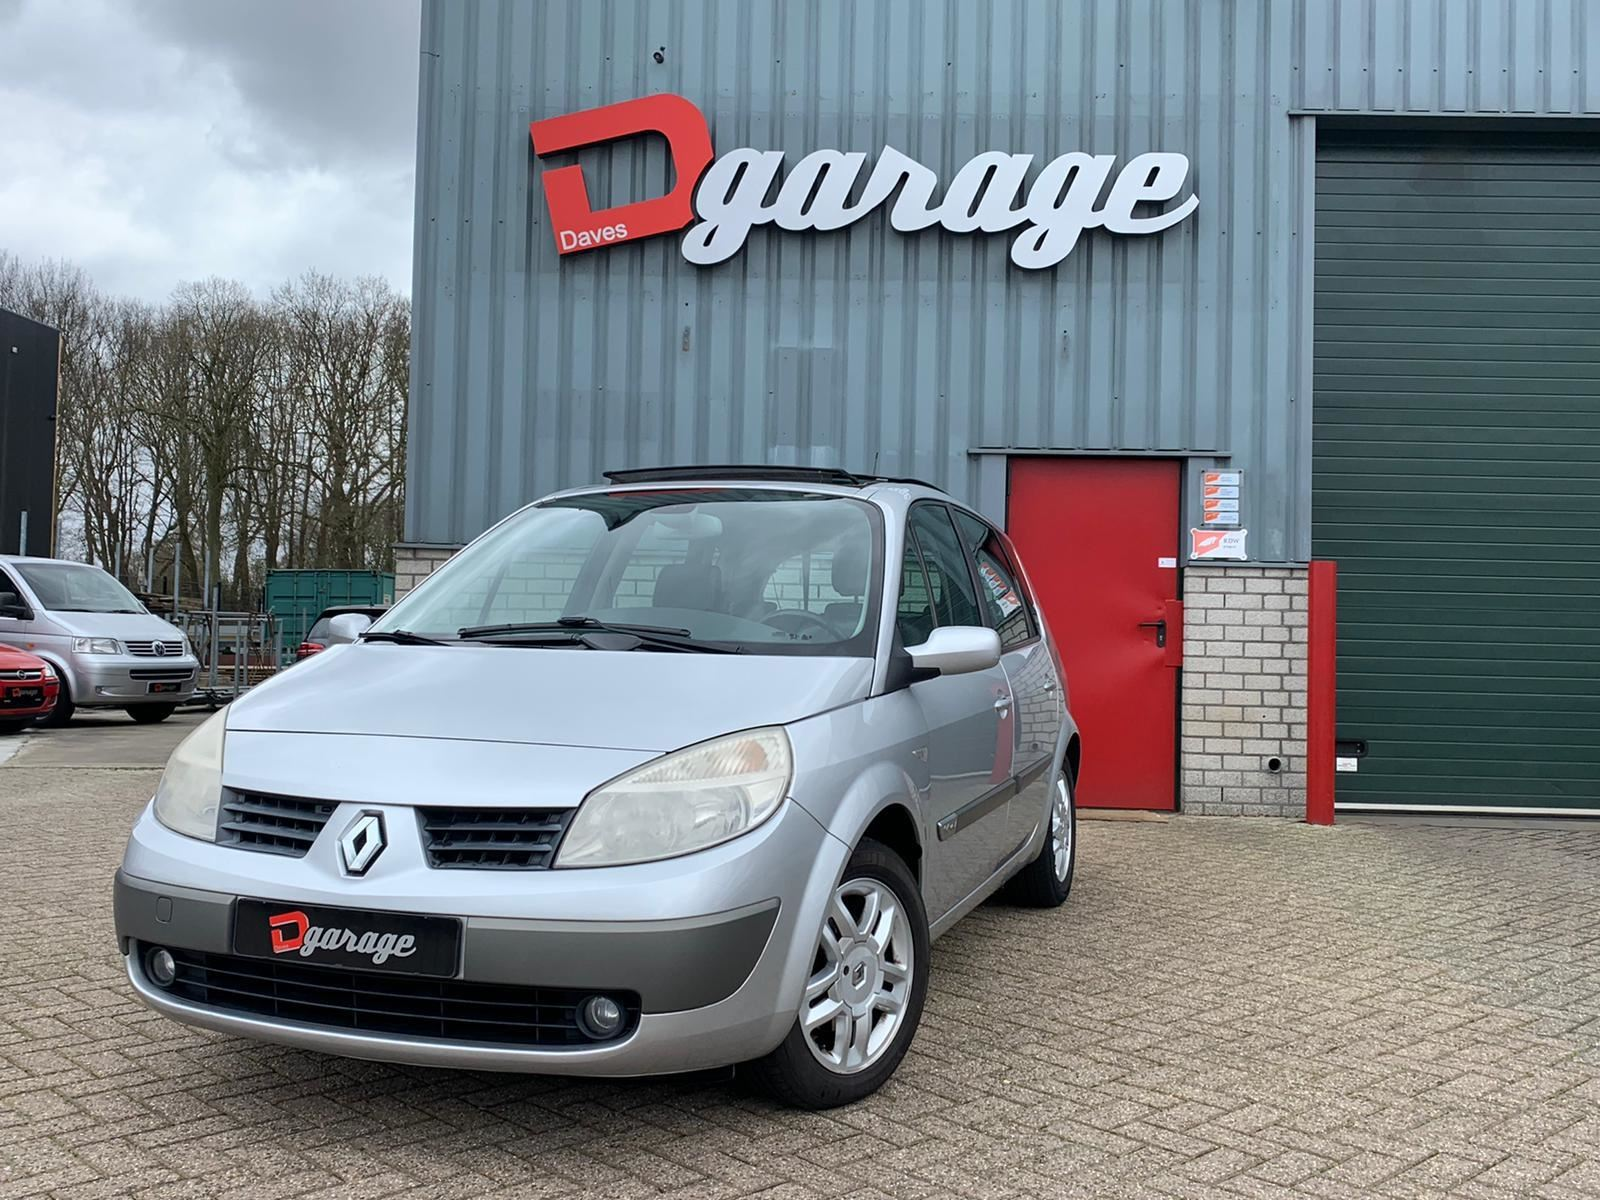 Renault Scénic occasion - Dave's Garage